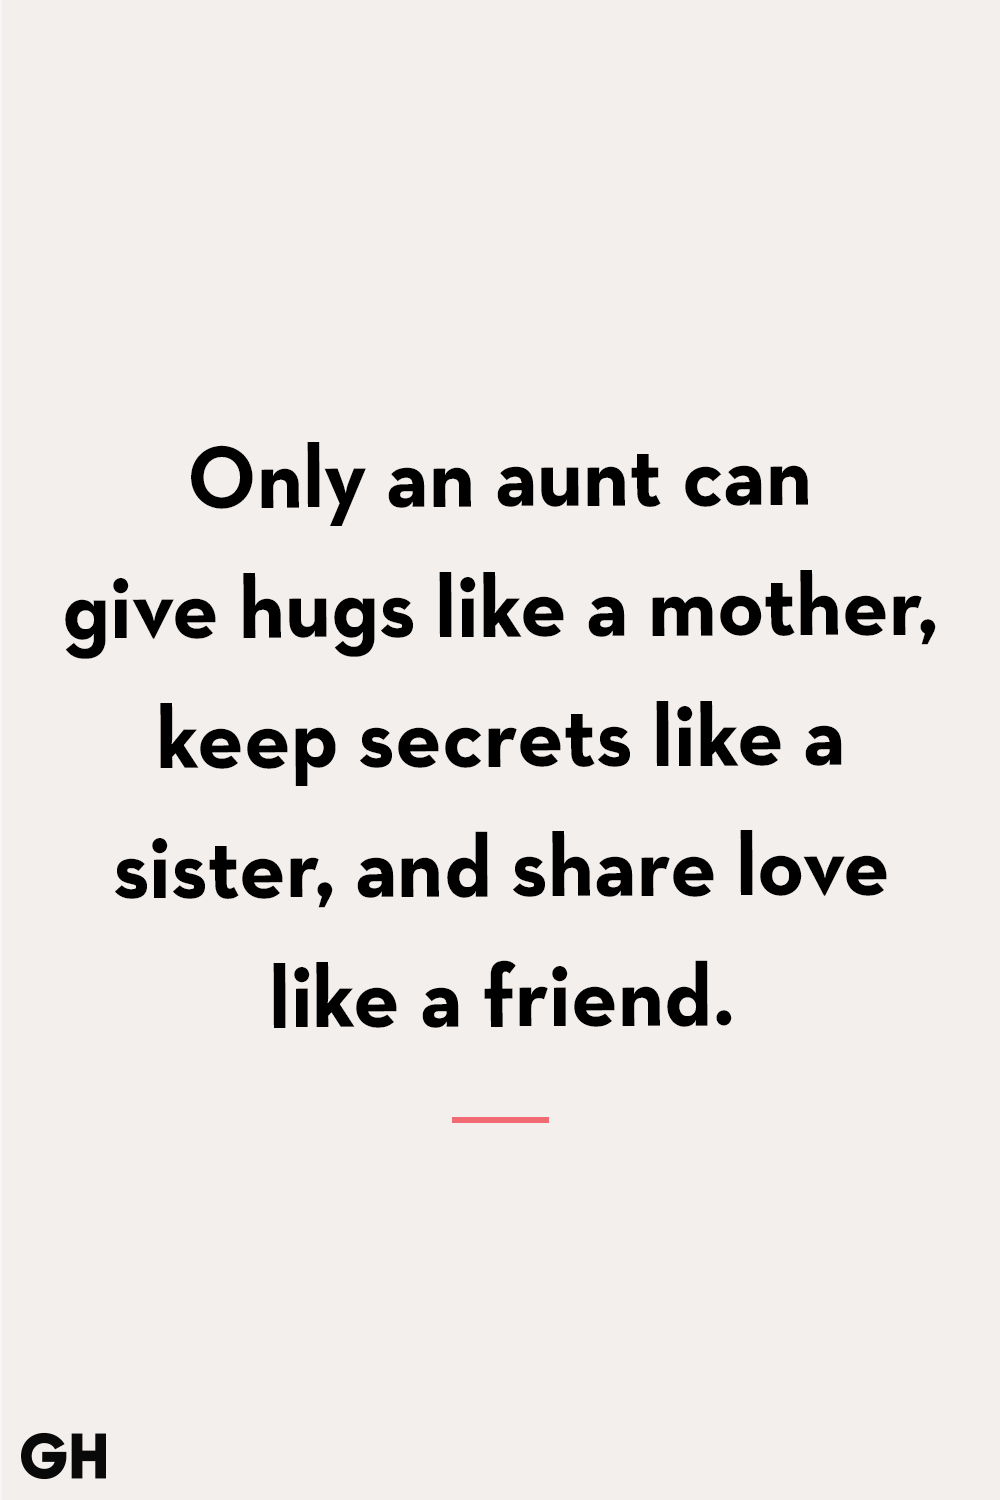 40 Niece Quotes For Every Proud Aunt and Uncle (2021)